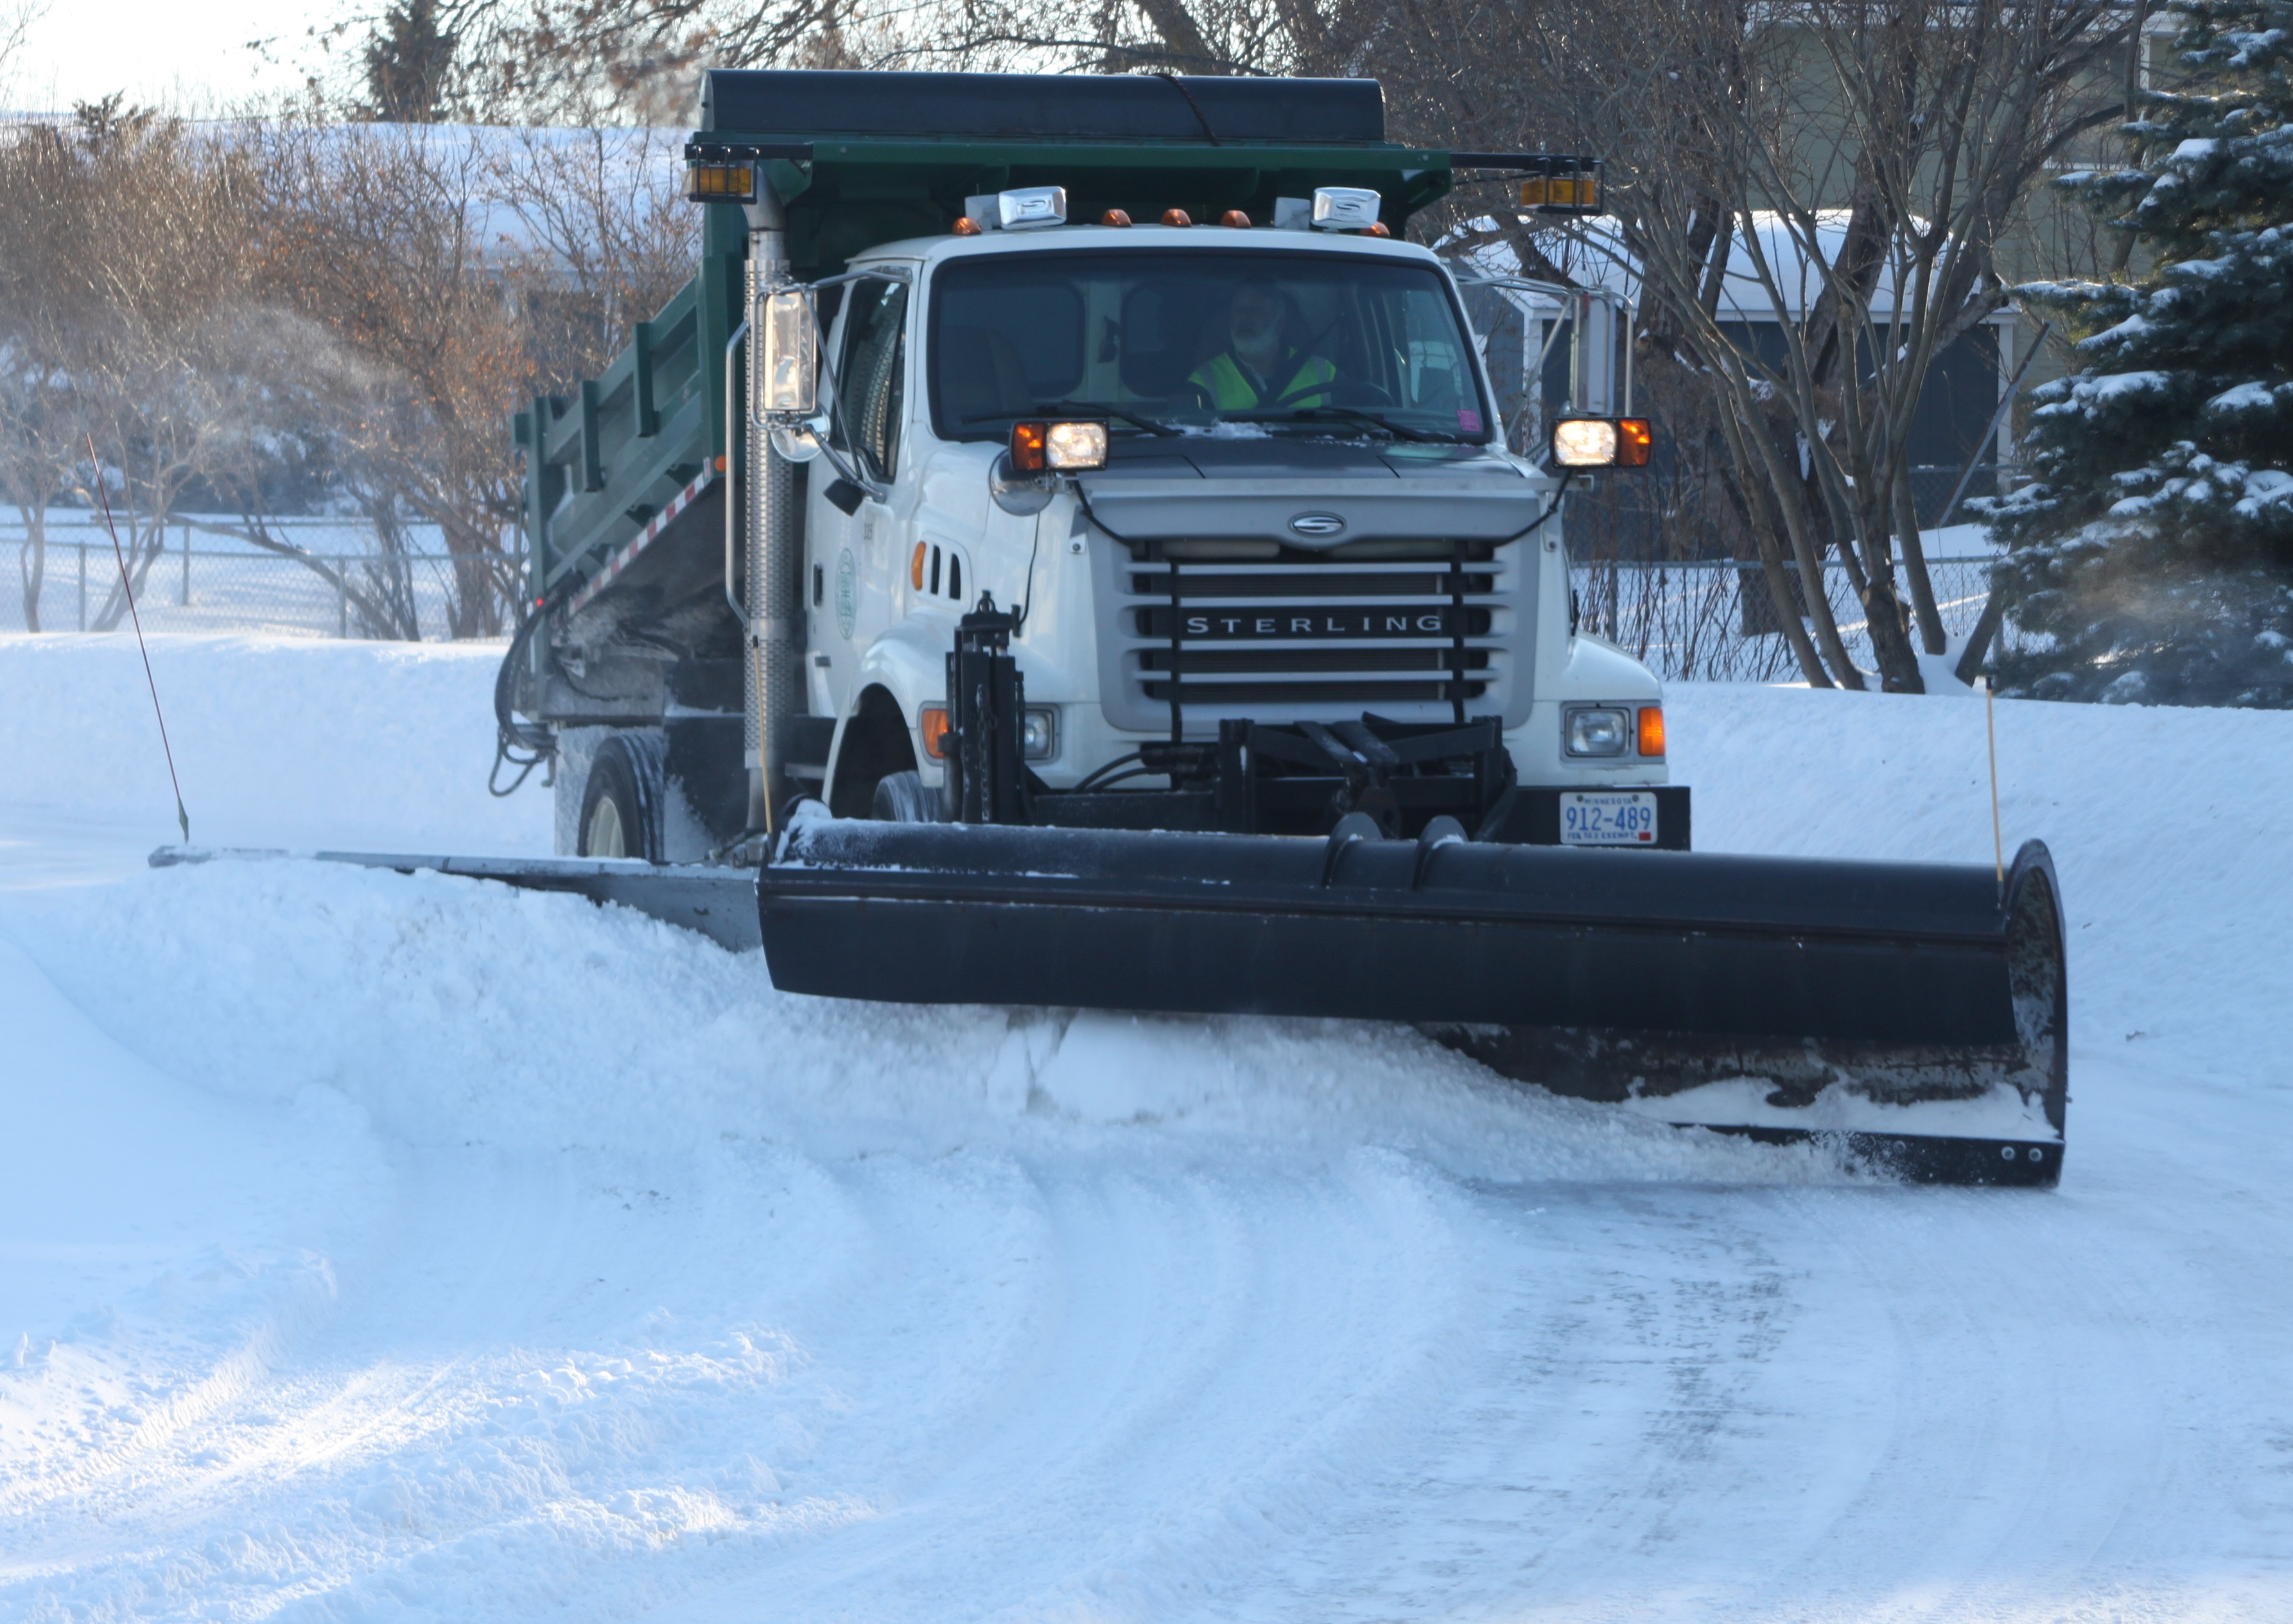 Severe damage is caused when snow plow blades dig in along the edges of the lawn.